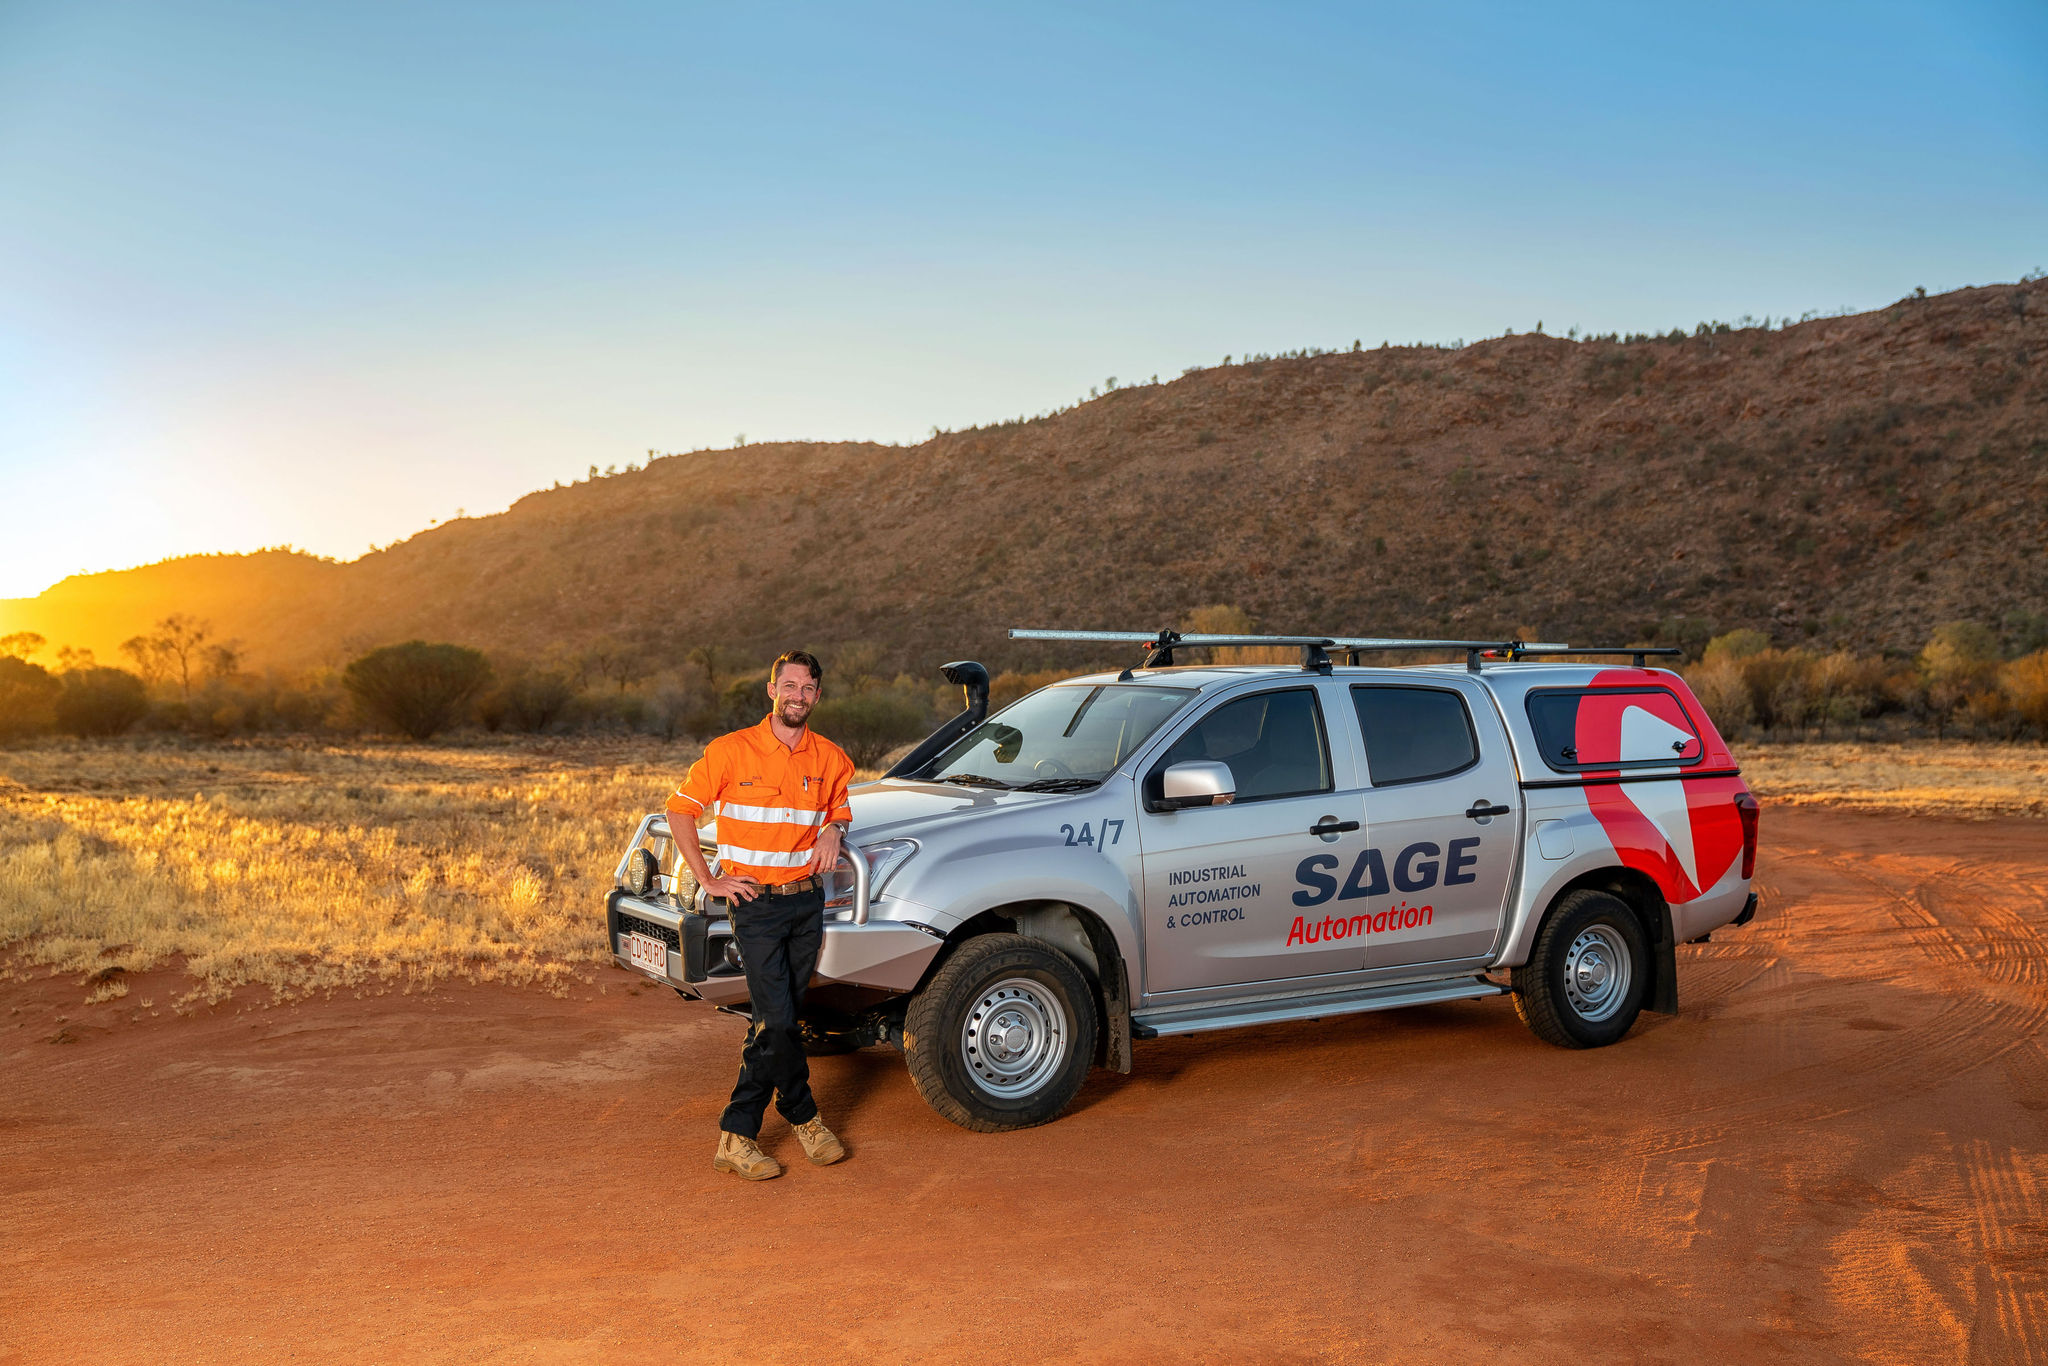 SAGE Automation Alice Springs control system support